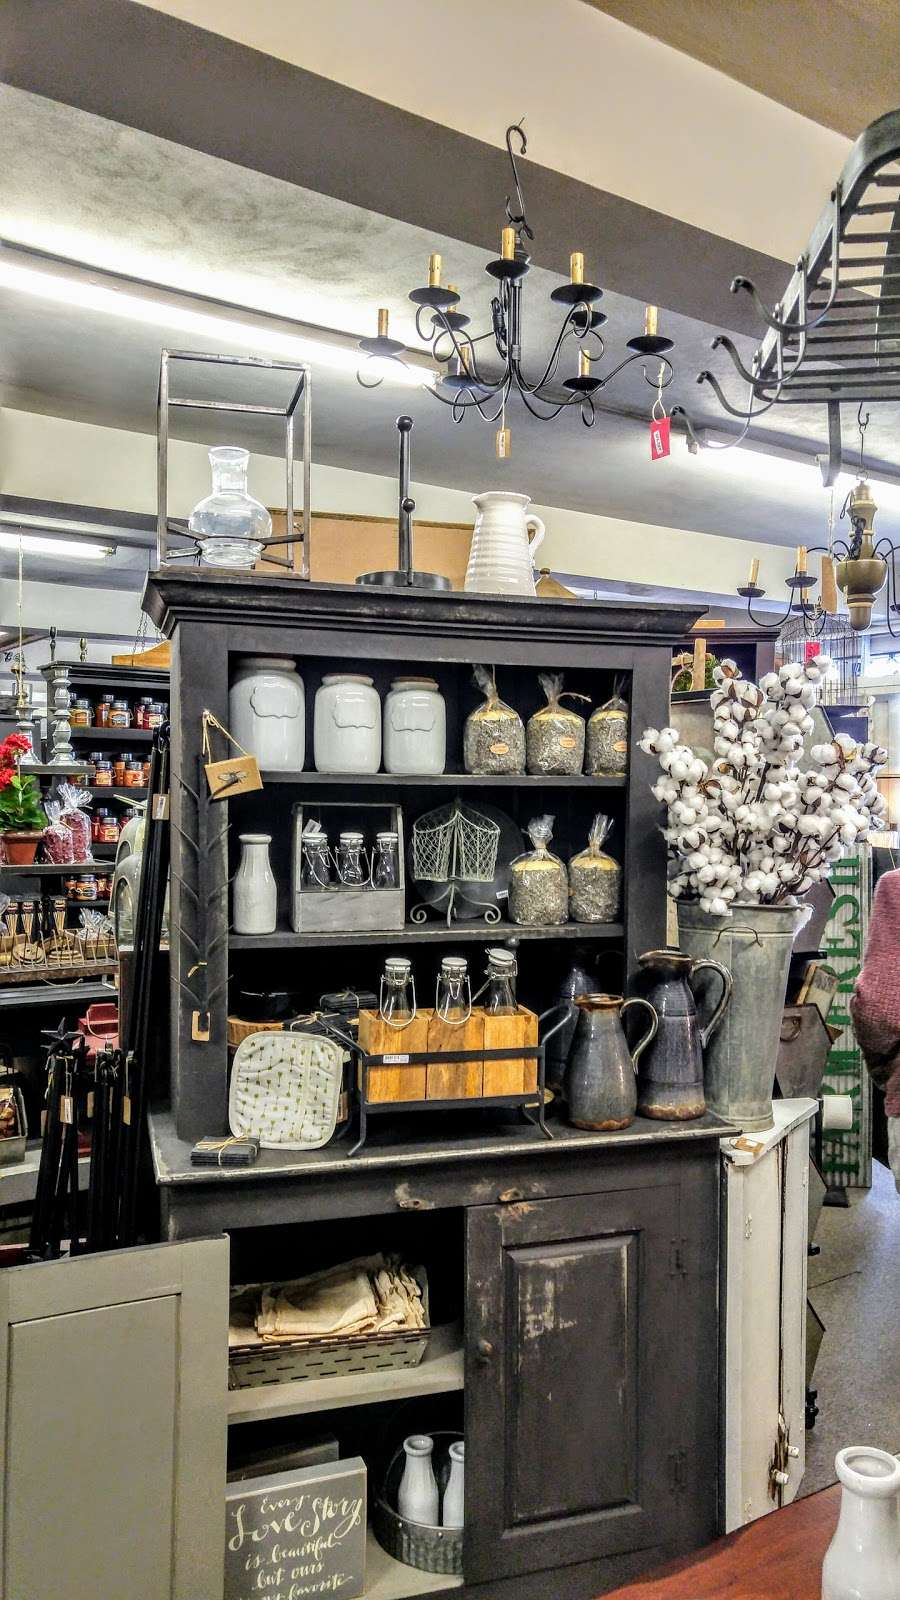 Cocalico Creek Country Store - home goods store  | Photo 6 of 10 | Address: 1037 N Reading Rd, Stevens, PA 17578, USA | Phone: (717) 336-5522